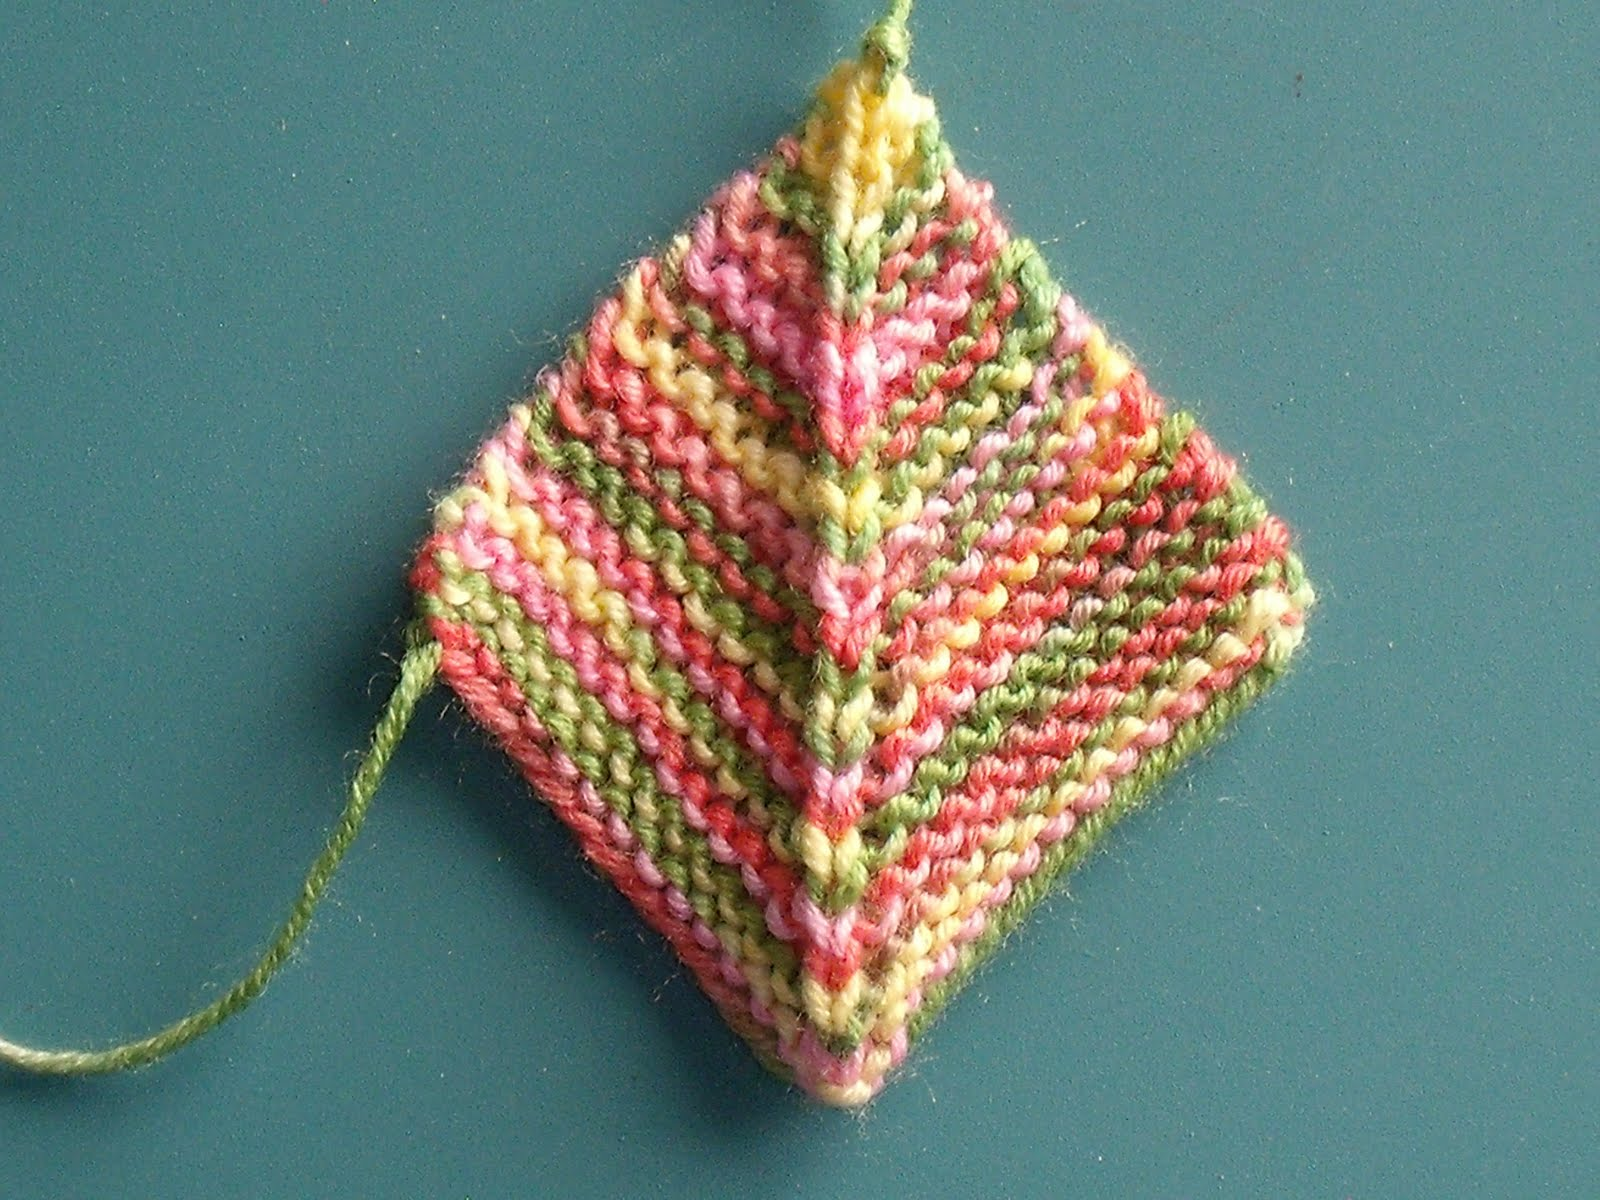 Knitting Patterns For Mitered Squares : Easy Crochet Pattern: Knit Mitered Square Blanket